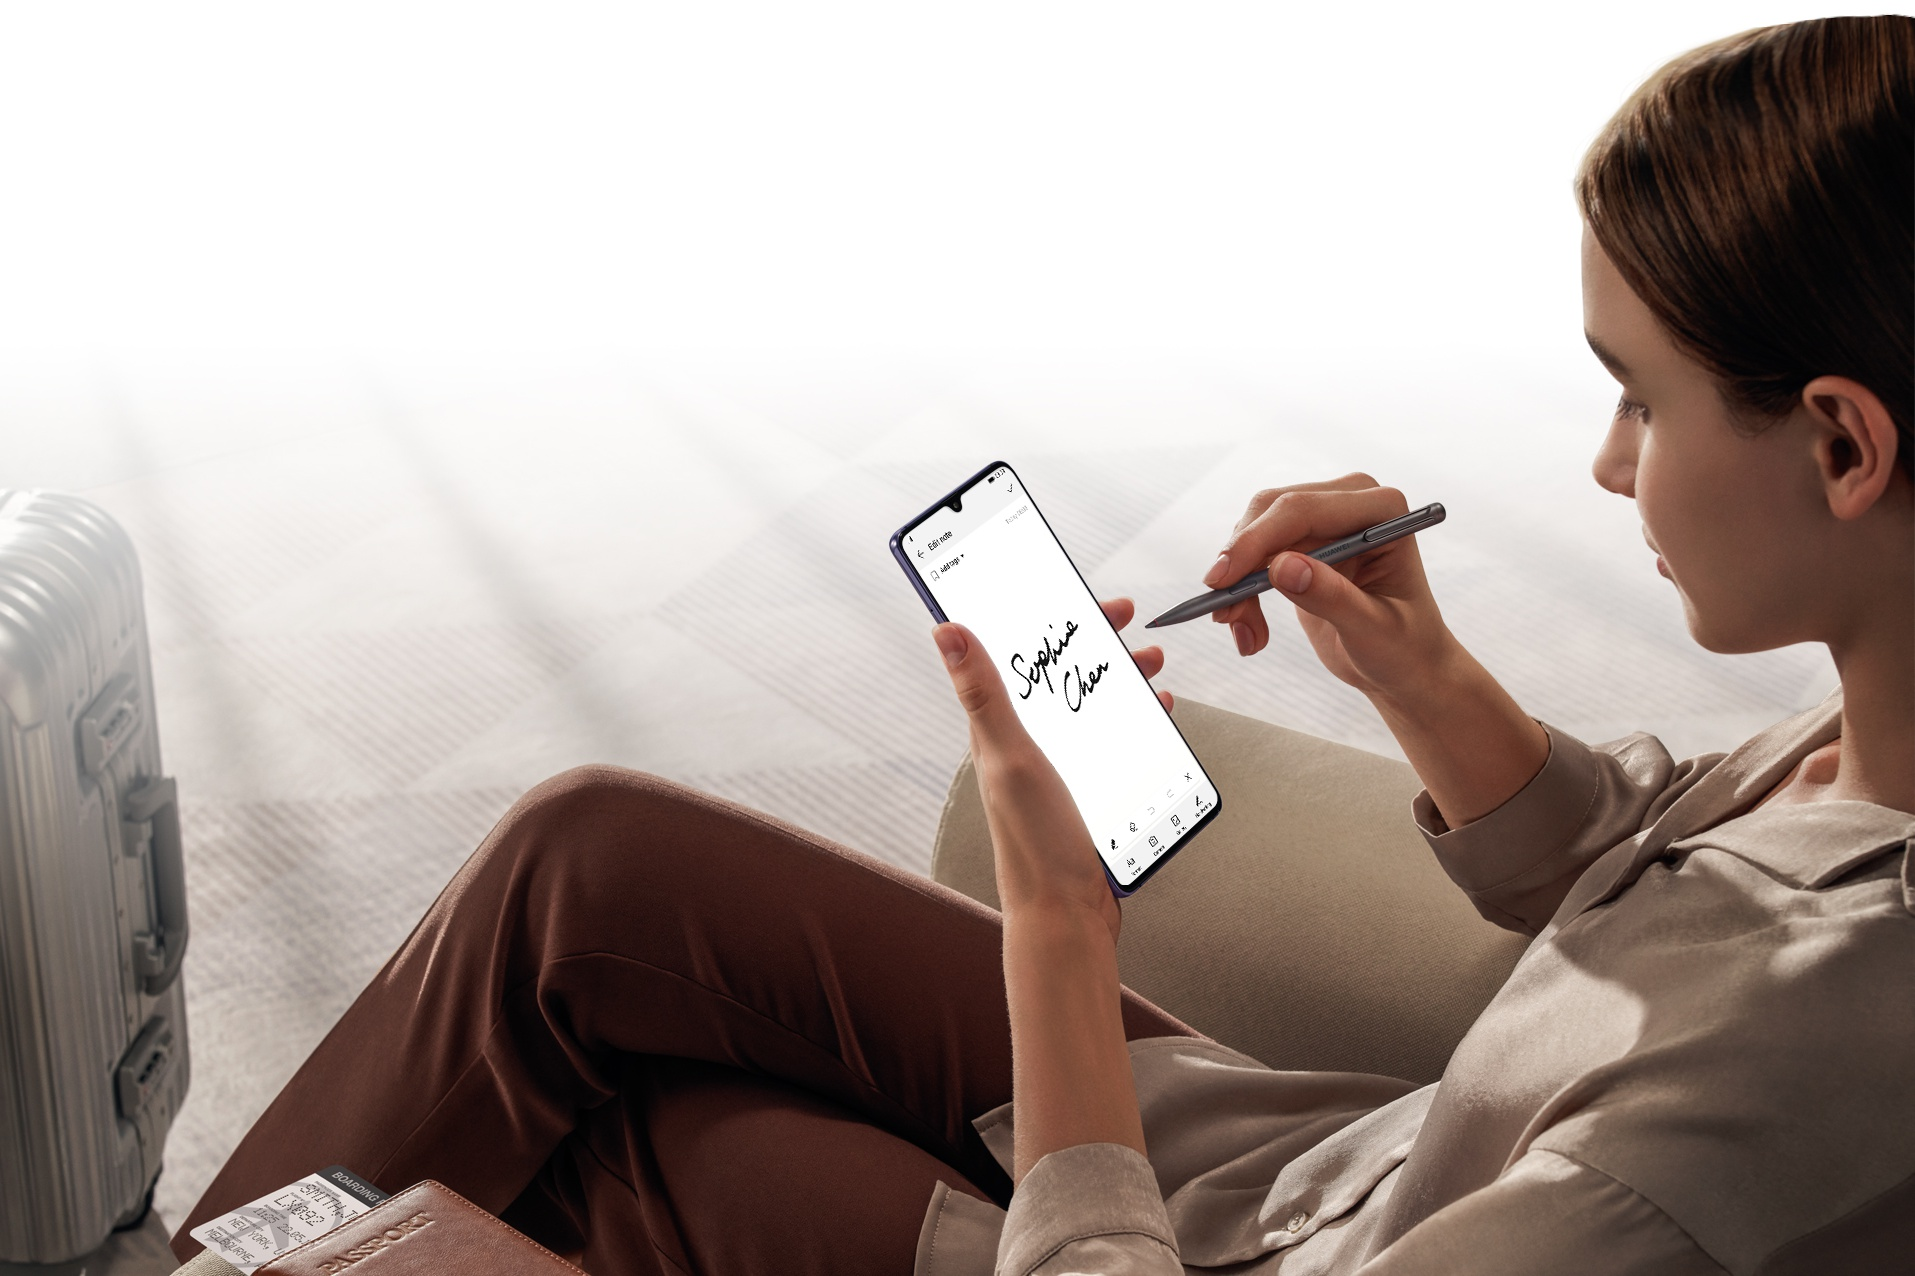 Huawei-Mate-20-X-sets-to-prove-bigger-is-better-going-for-the-Galaxy-Note-9-jugular-with-a-stylus.jpg